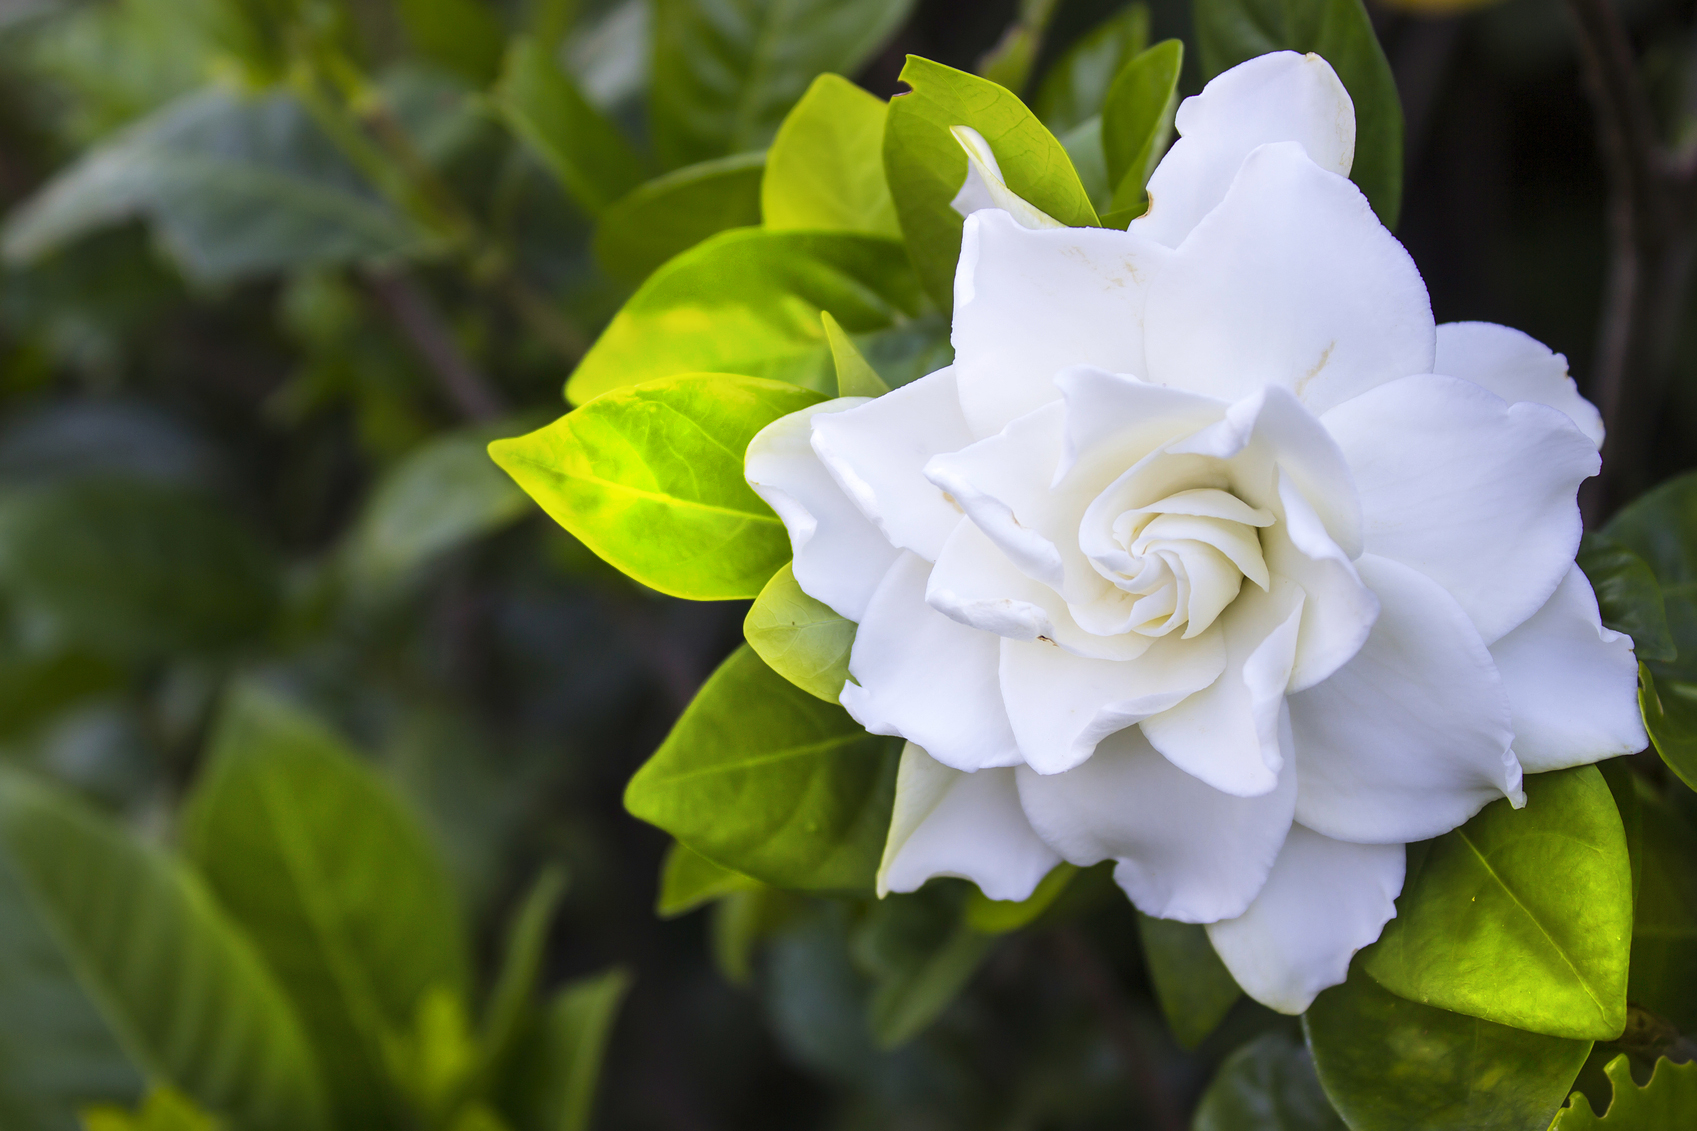 Gardenia Flower Leaf The Meaning Of Your Bouquet's Flowers | Glam & Gowns Blog